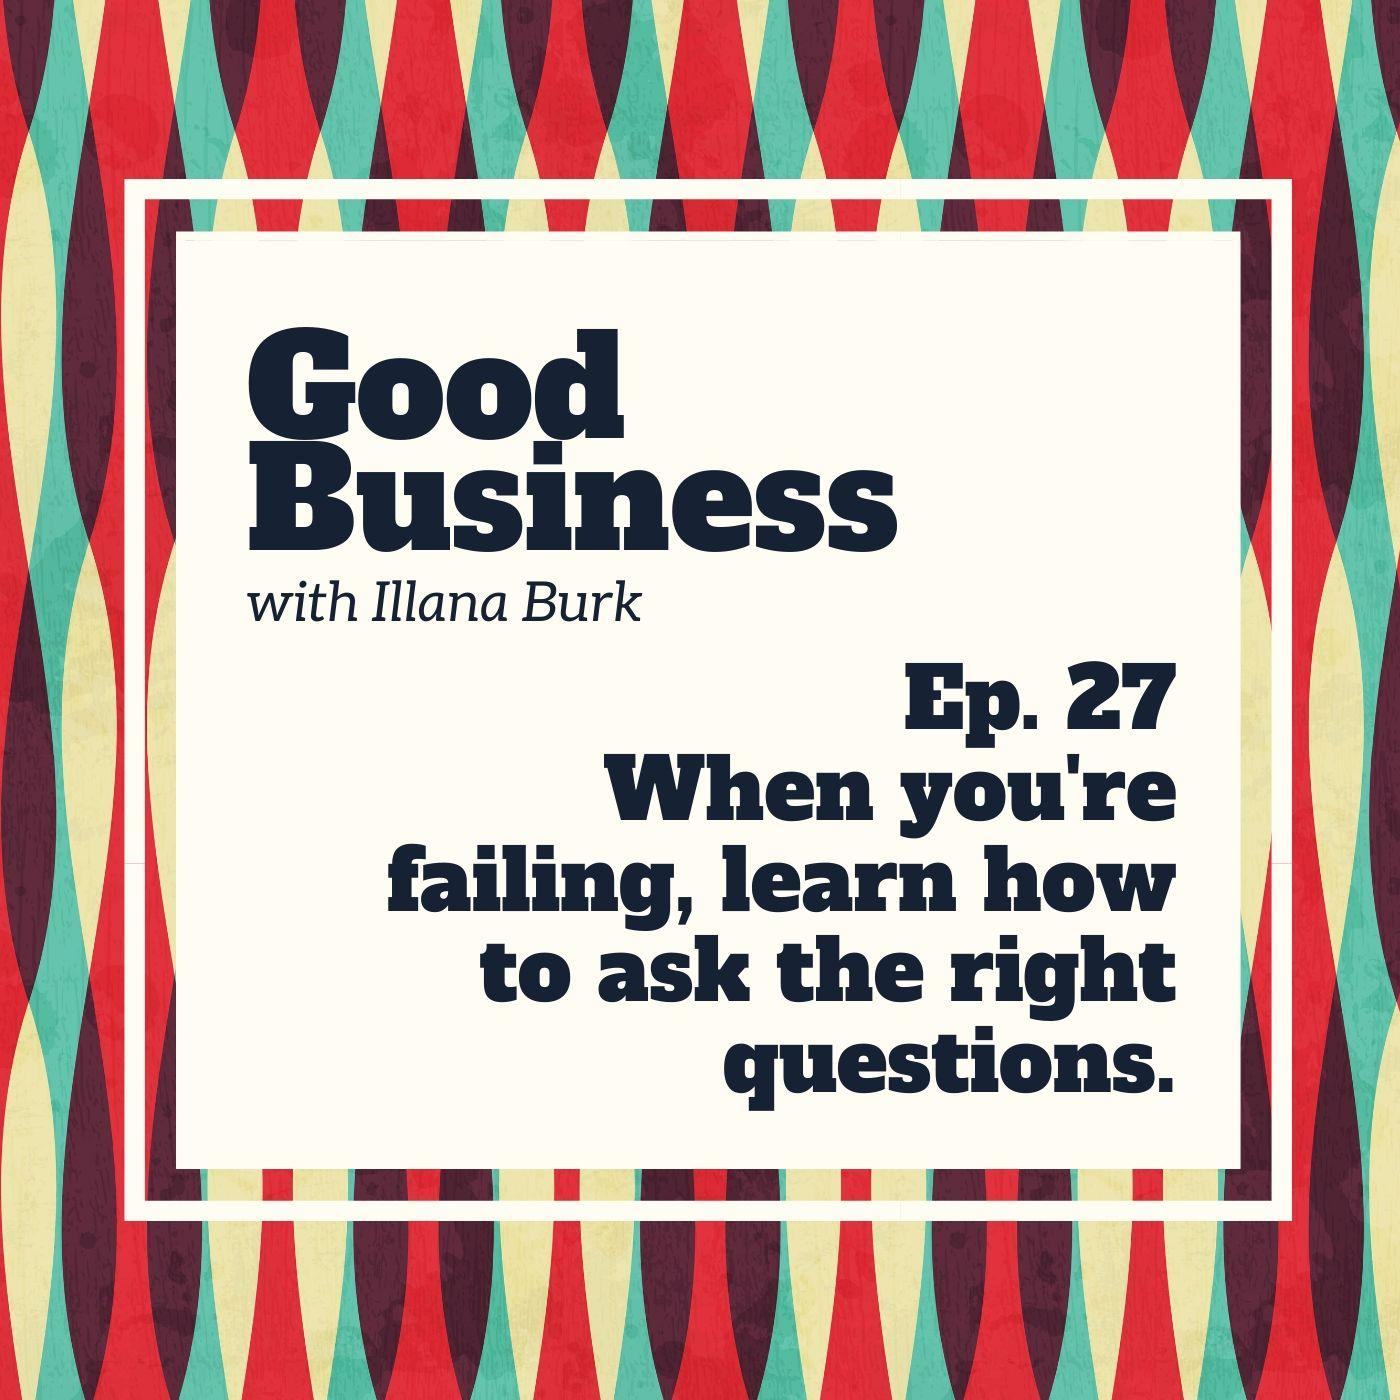 When you're failing, learn how to ask the right questions | GB 27